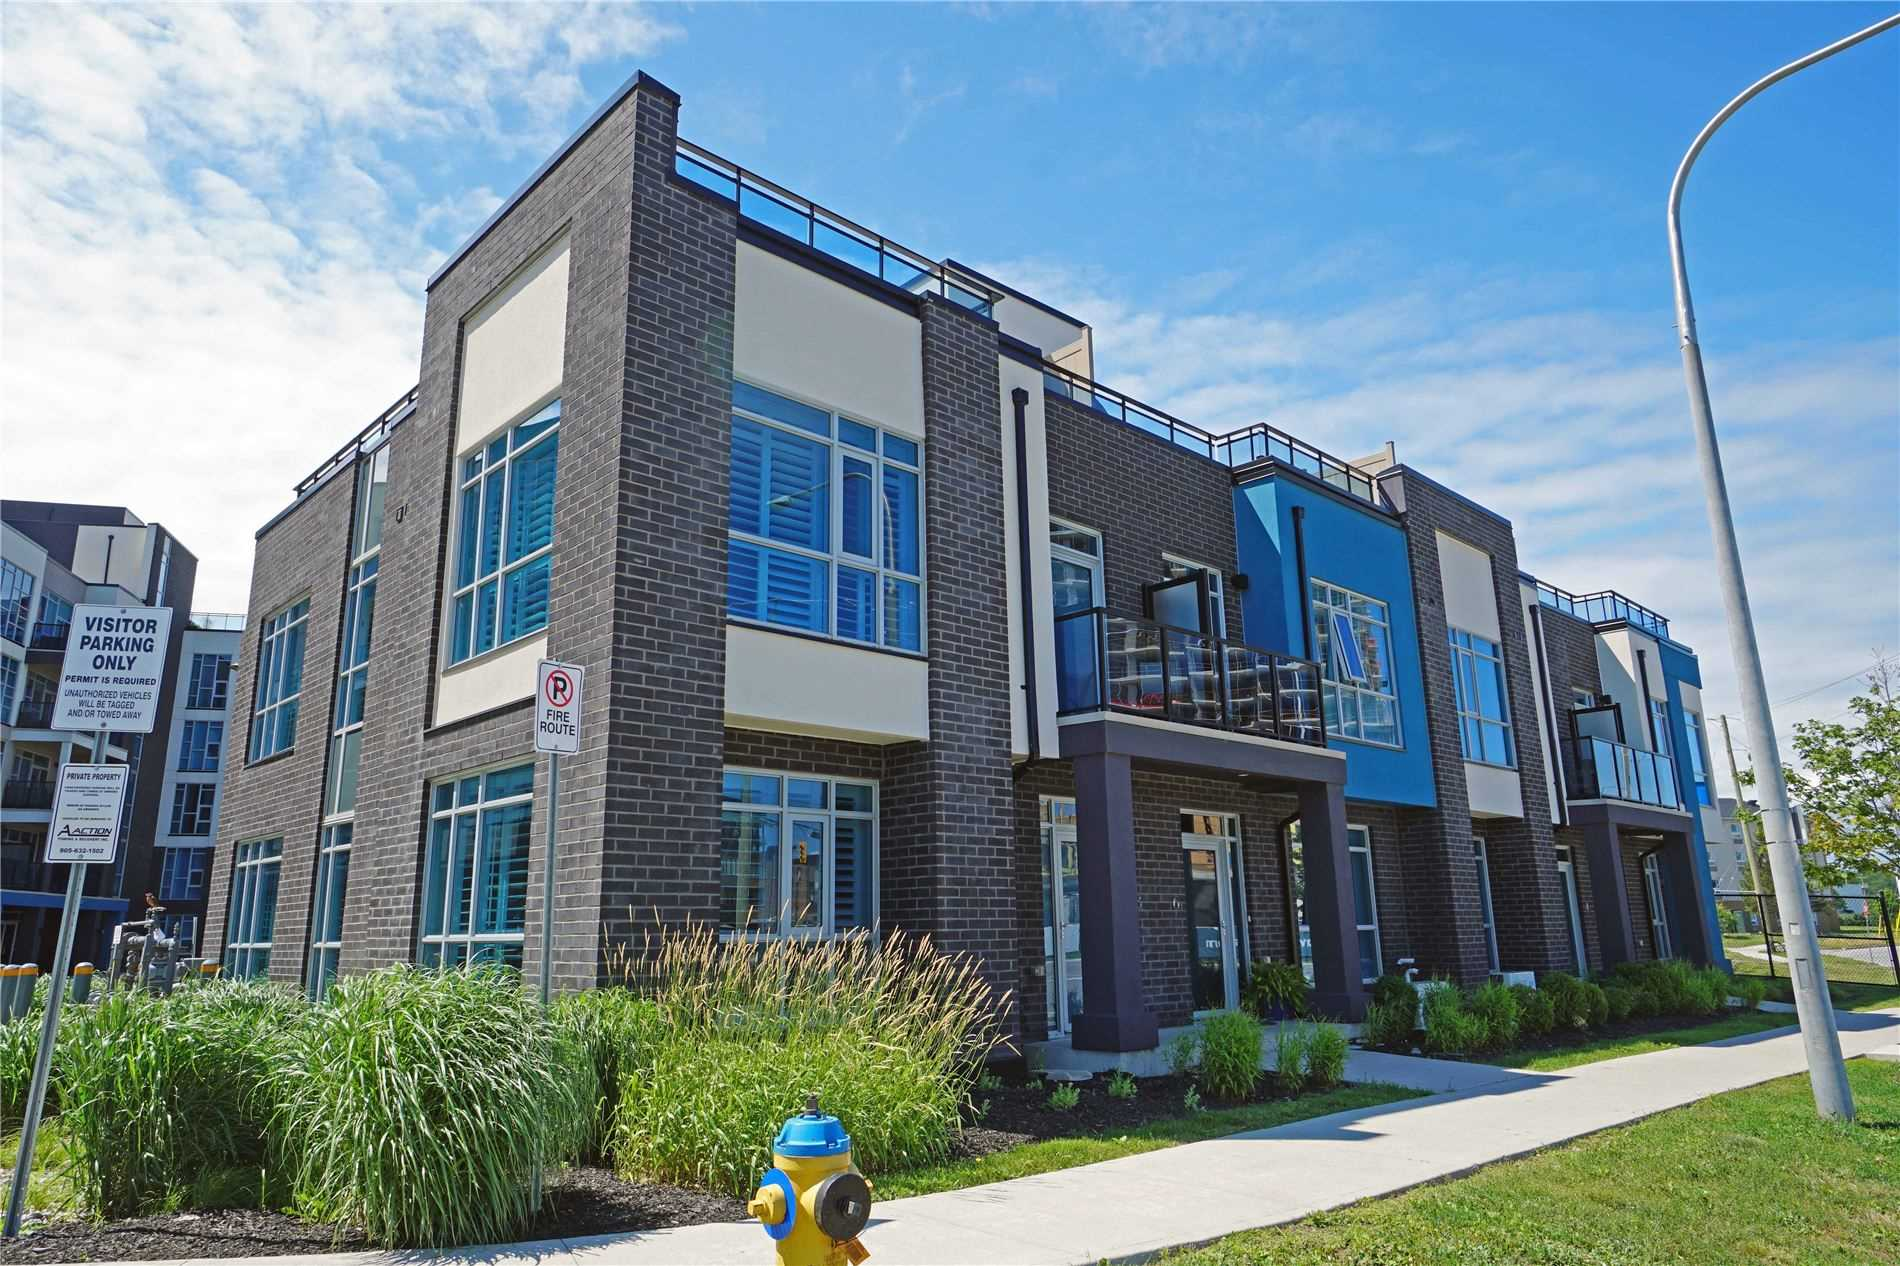 Condo Townhouse For Sale In Grimsby , 3 Bedrooms Bedrooms, ,3 BathroomsBathrooms,Condo Townhouse,For Sale,Concord